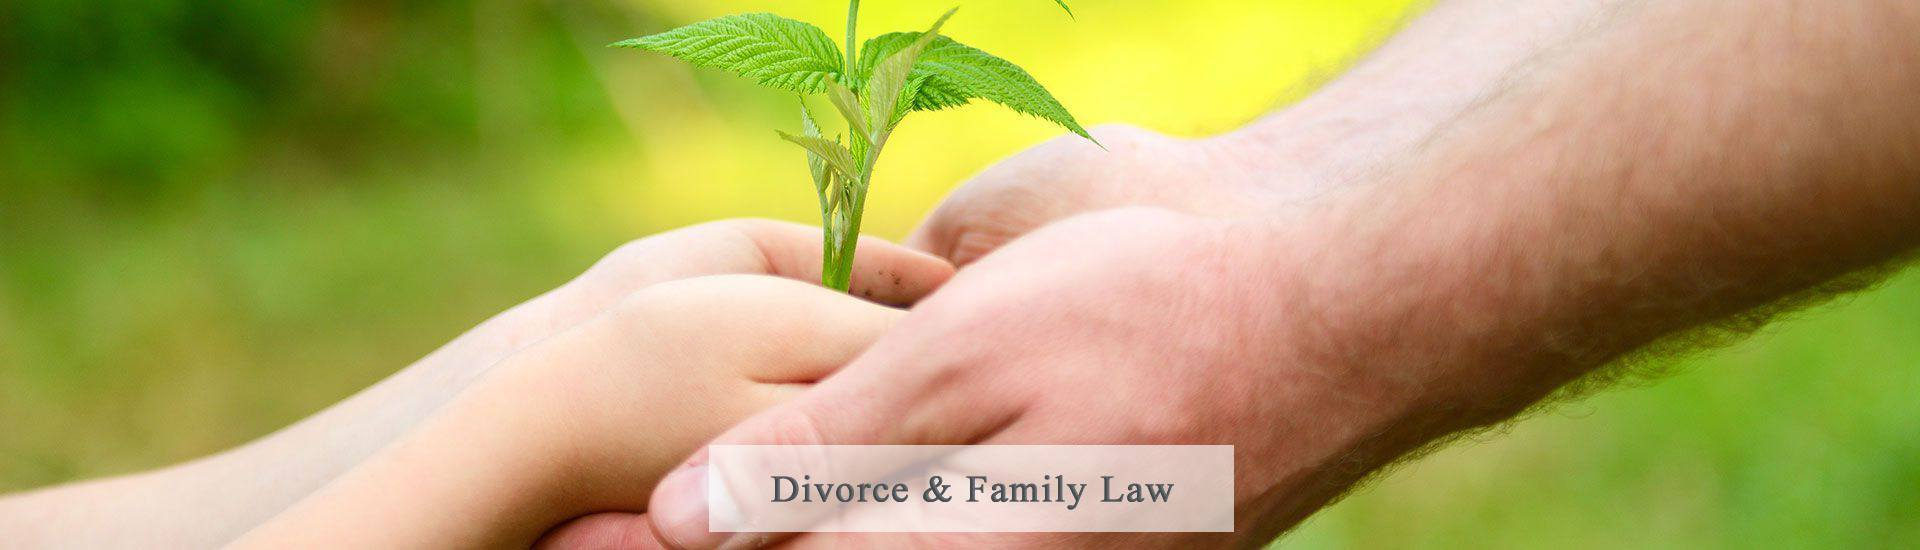 Divorce Lawyer in West Palm Beach Florida